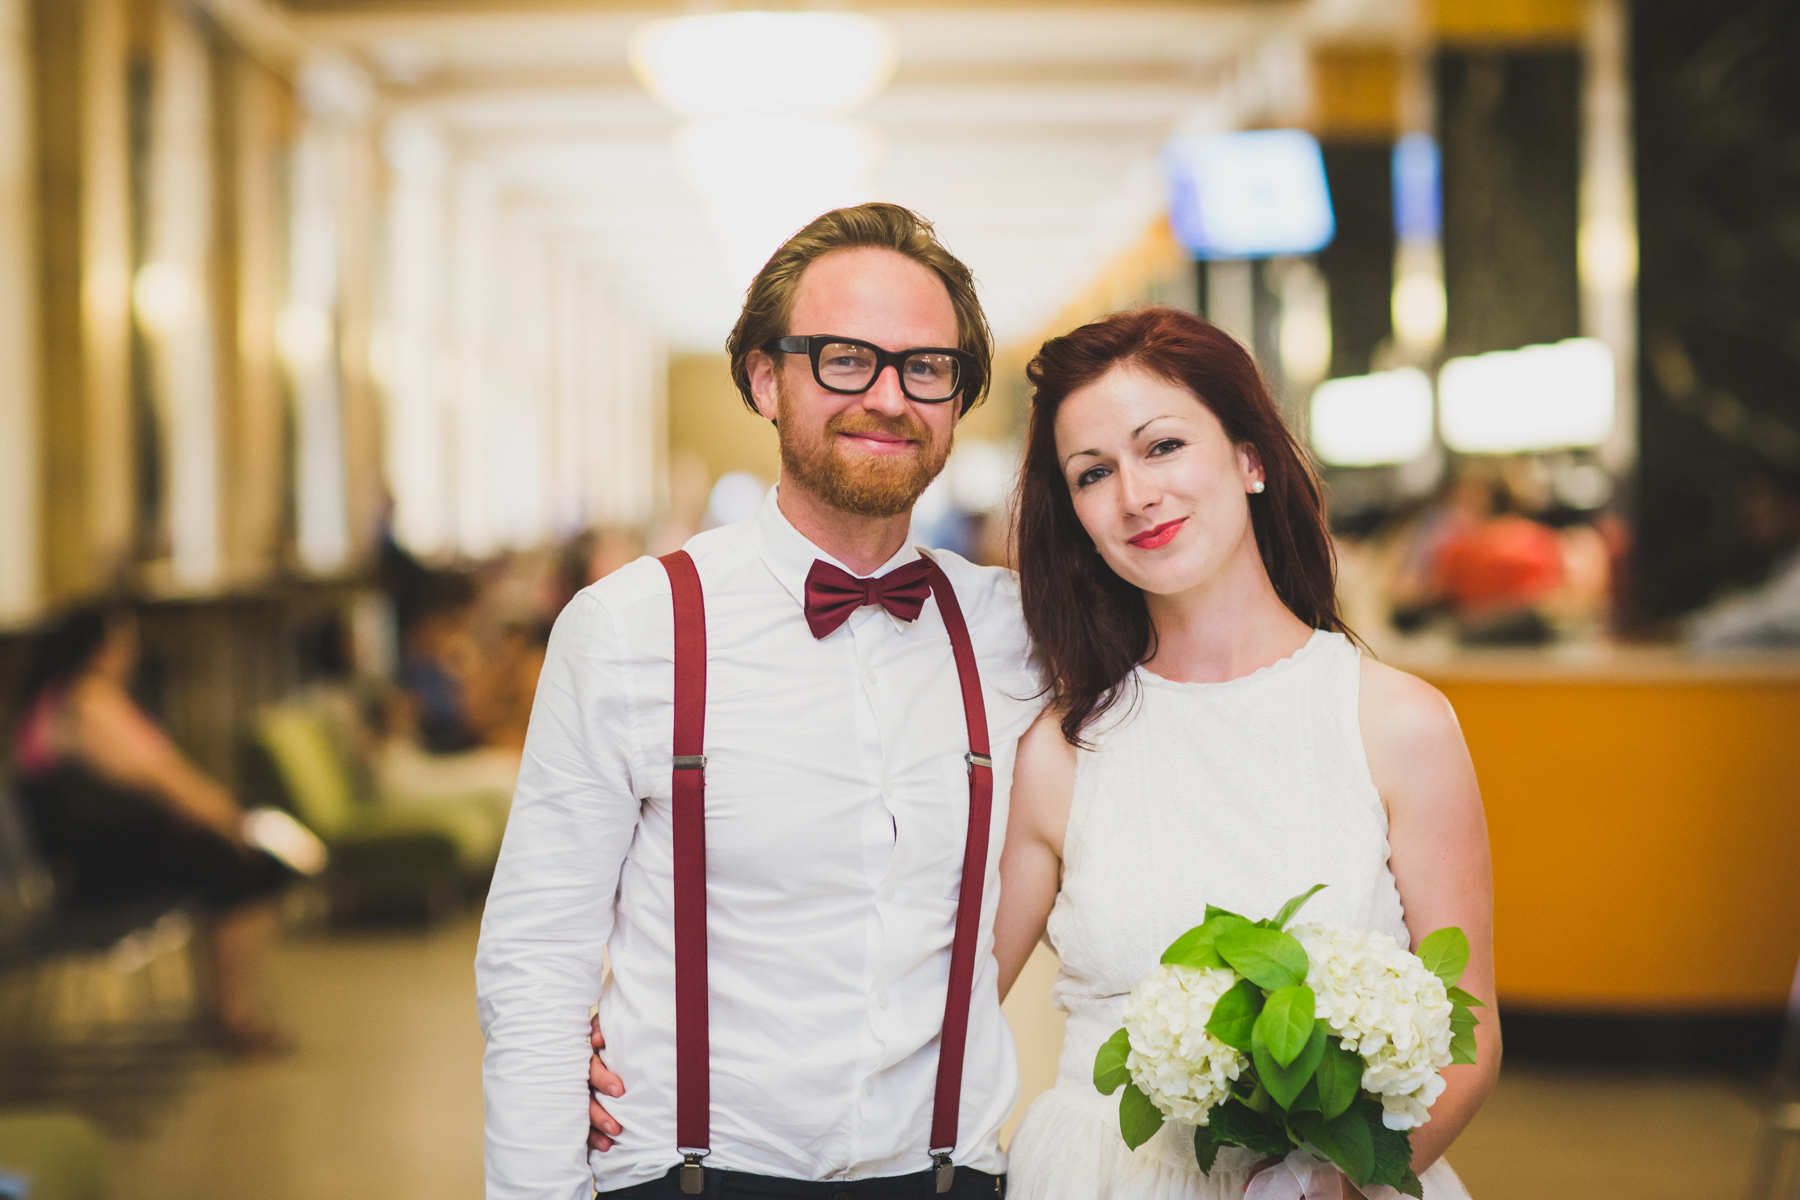 City-Hall-NYC-Elopement-New-York-Documentary-Wedding-Photographer-Elvira-Kalviste-8.jpg